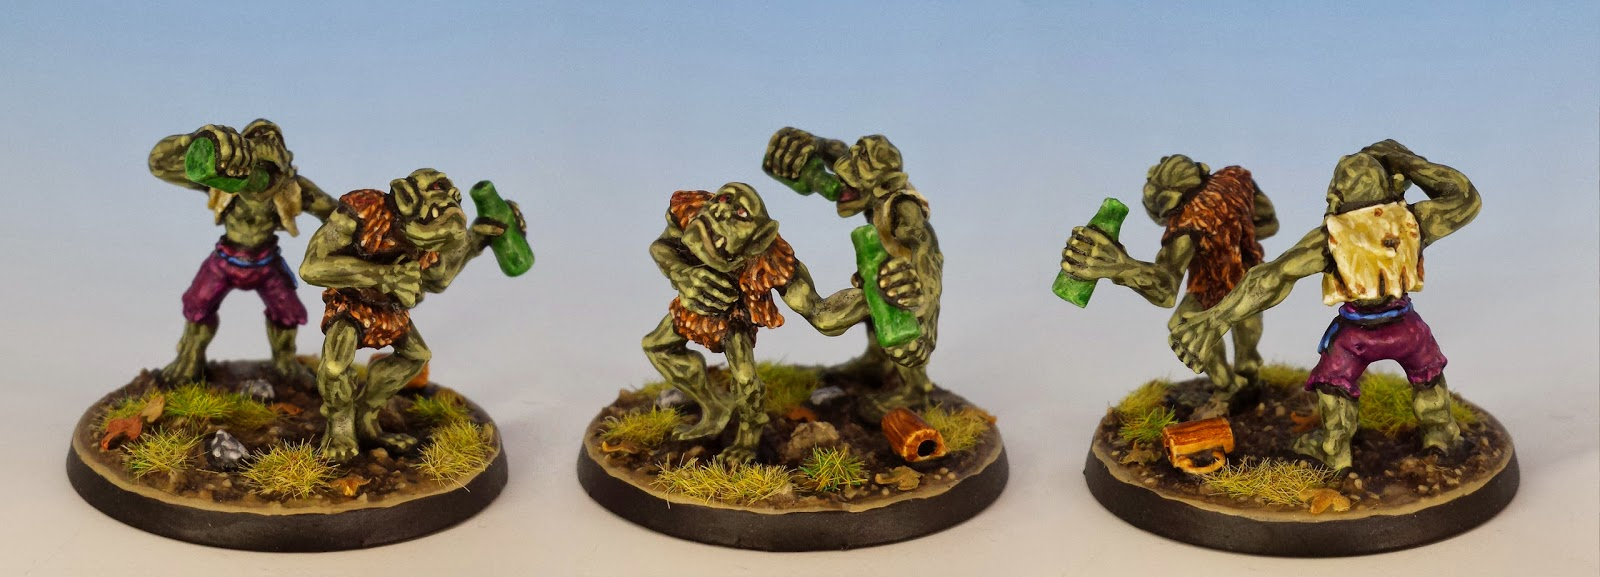 Orc Villagers C46, Citadel Miniatures (1988, sculpted by Trish Carden)